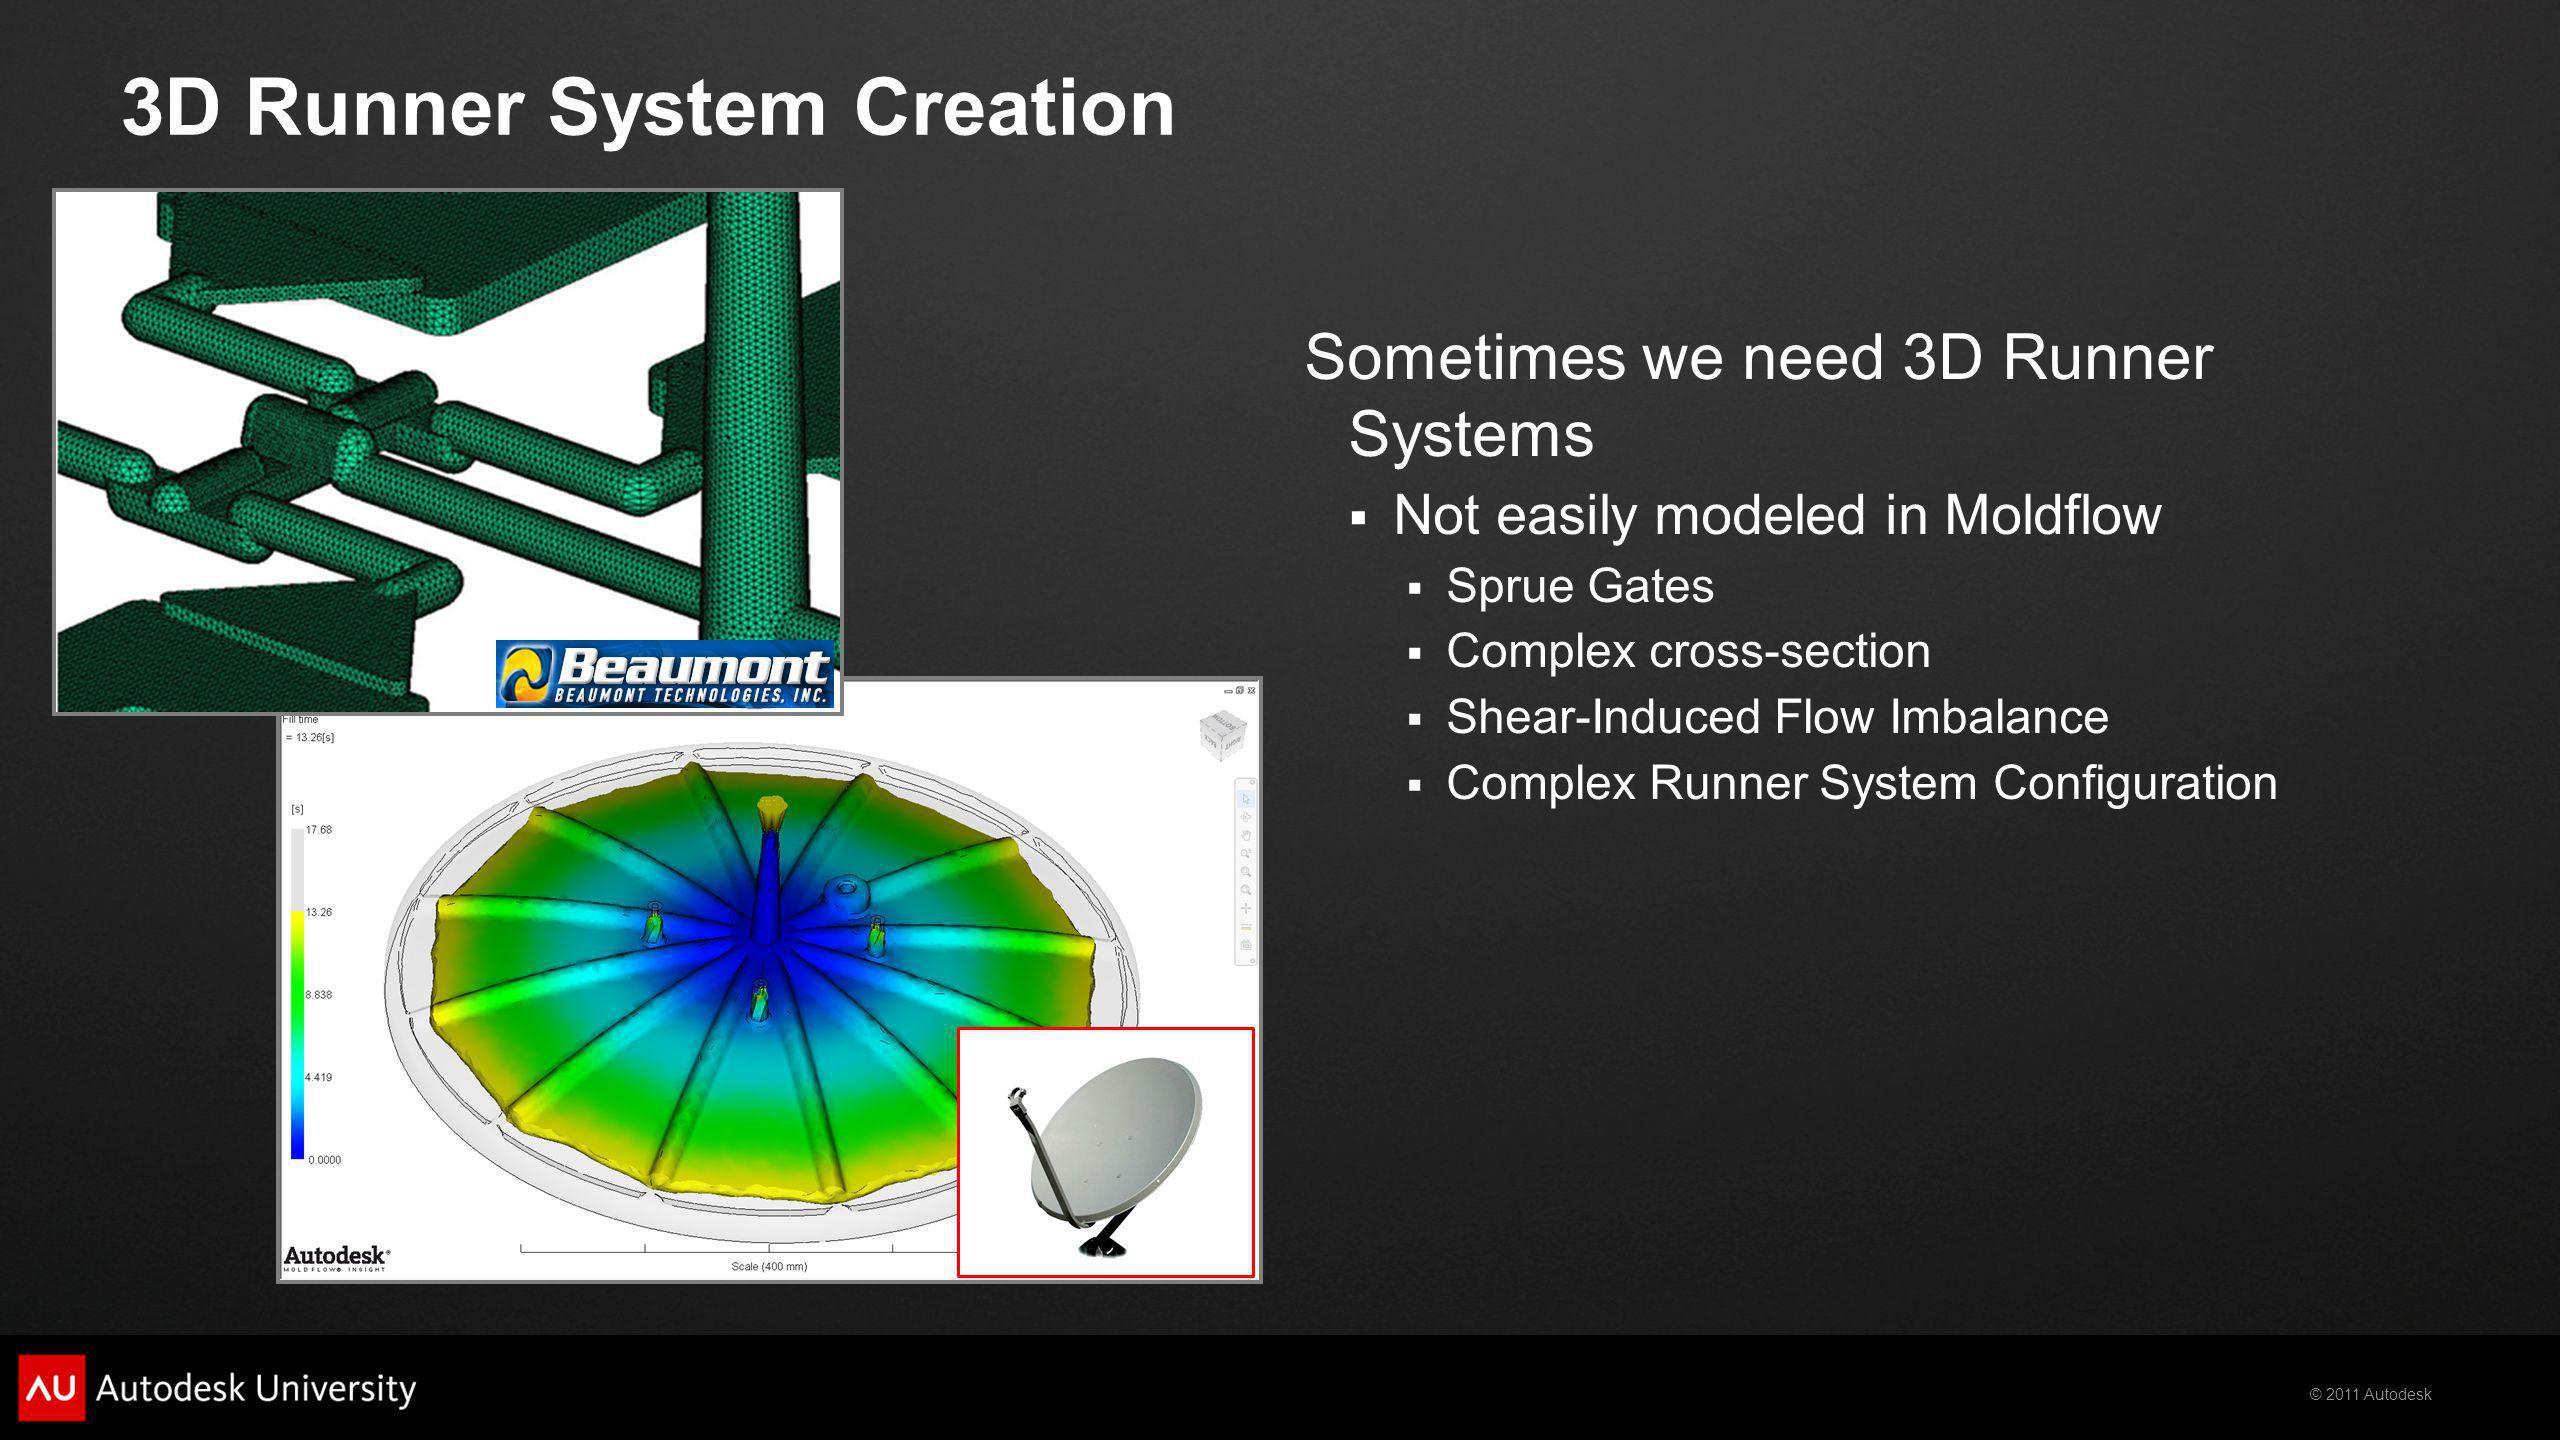 3D Runner System Creation